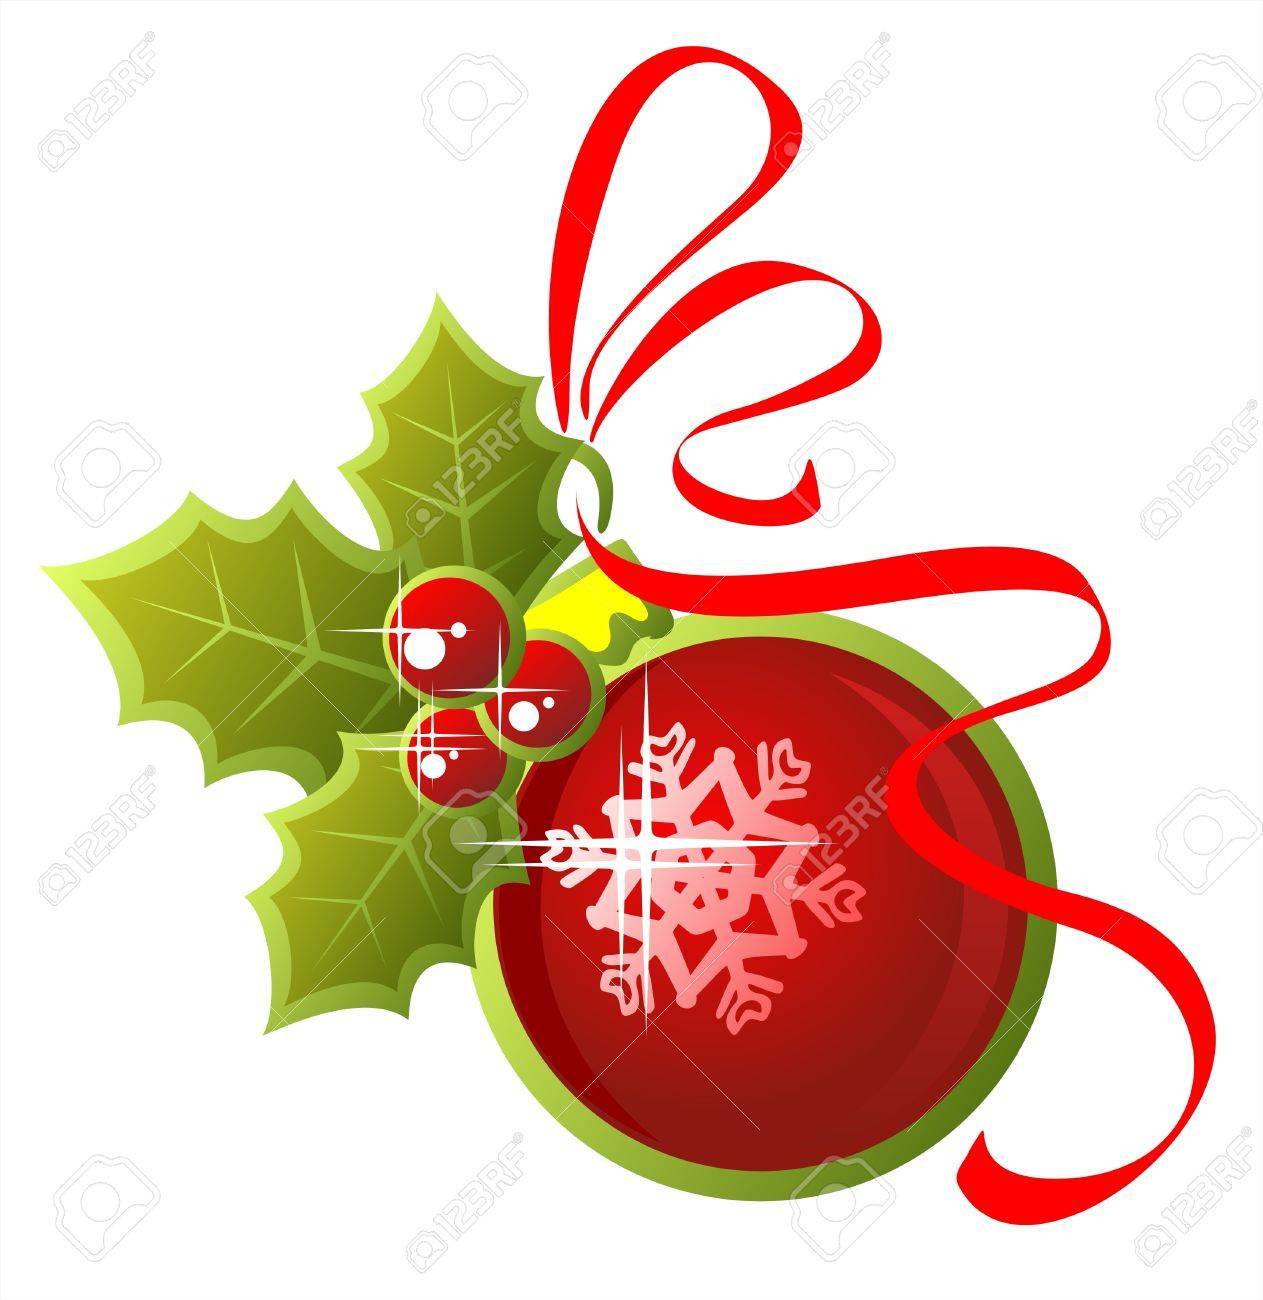 Red ornate christmas ball with holly berries and red tape on a white background. Stock Vector - 2207055